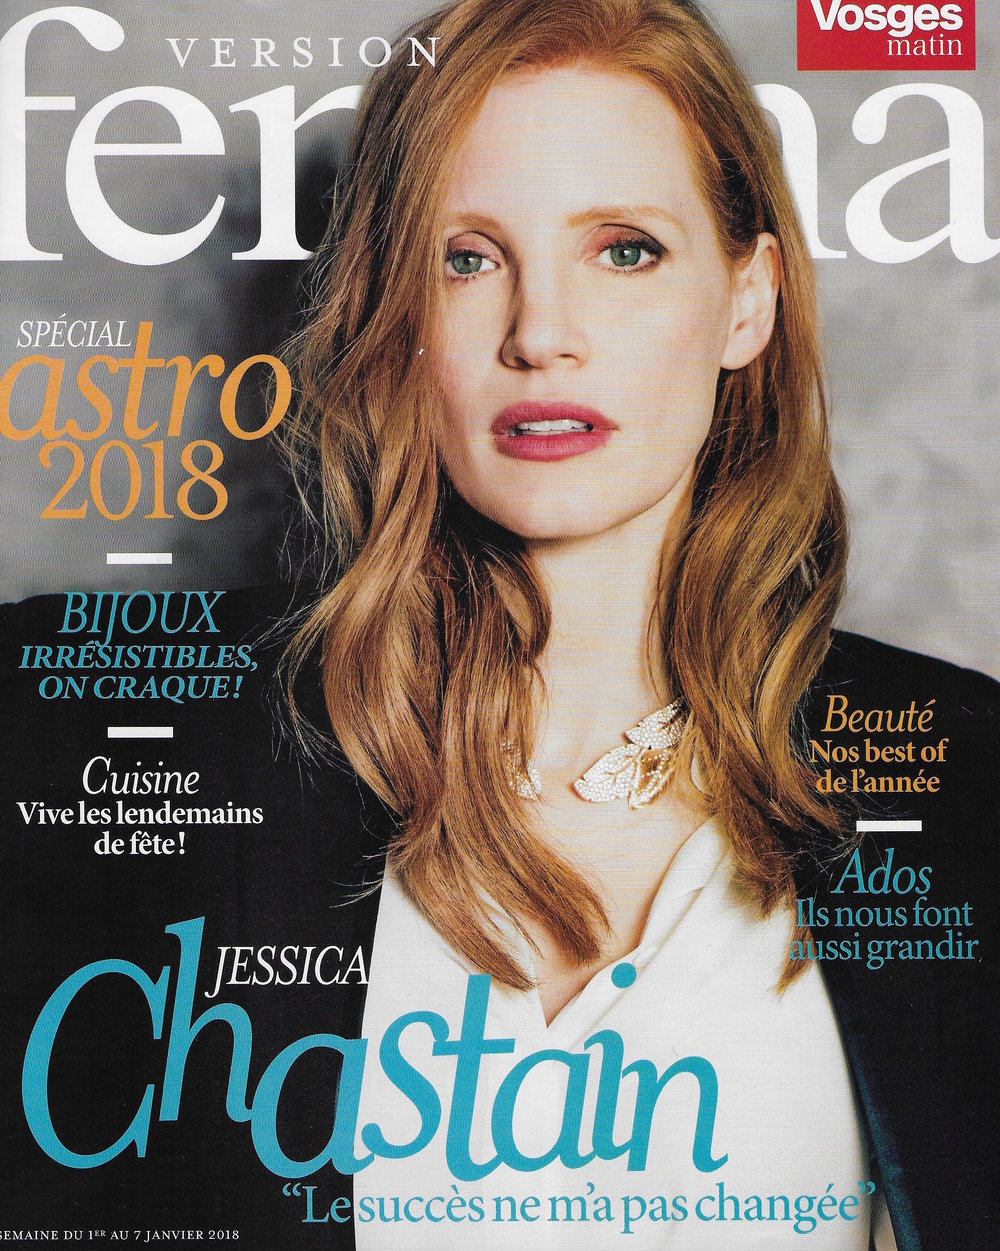 Version Femina - 1 au 7 janvier 2018 - Couv.jpeg